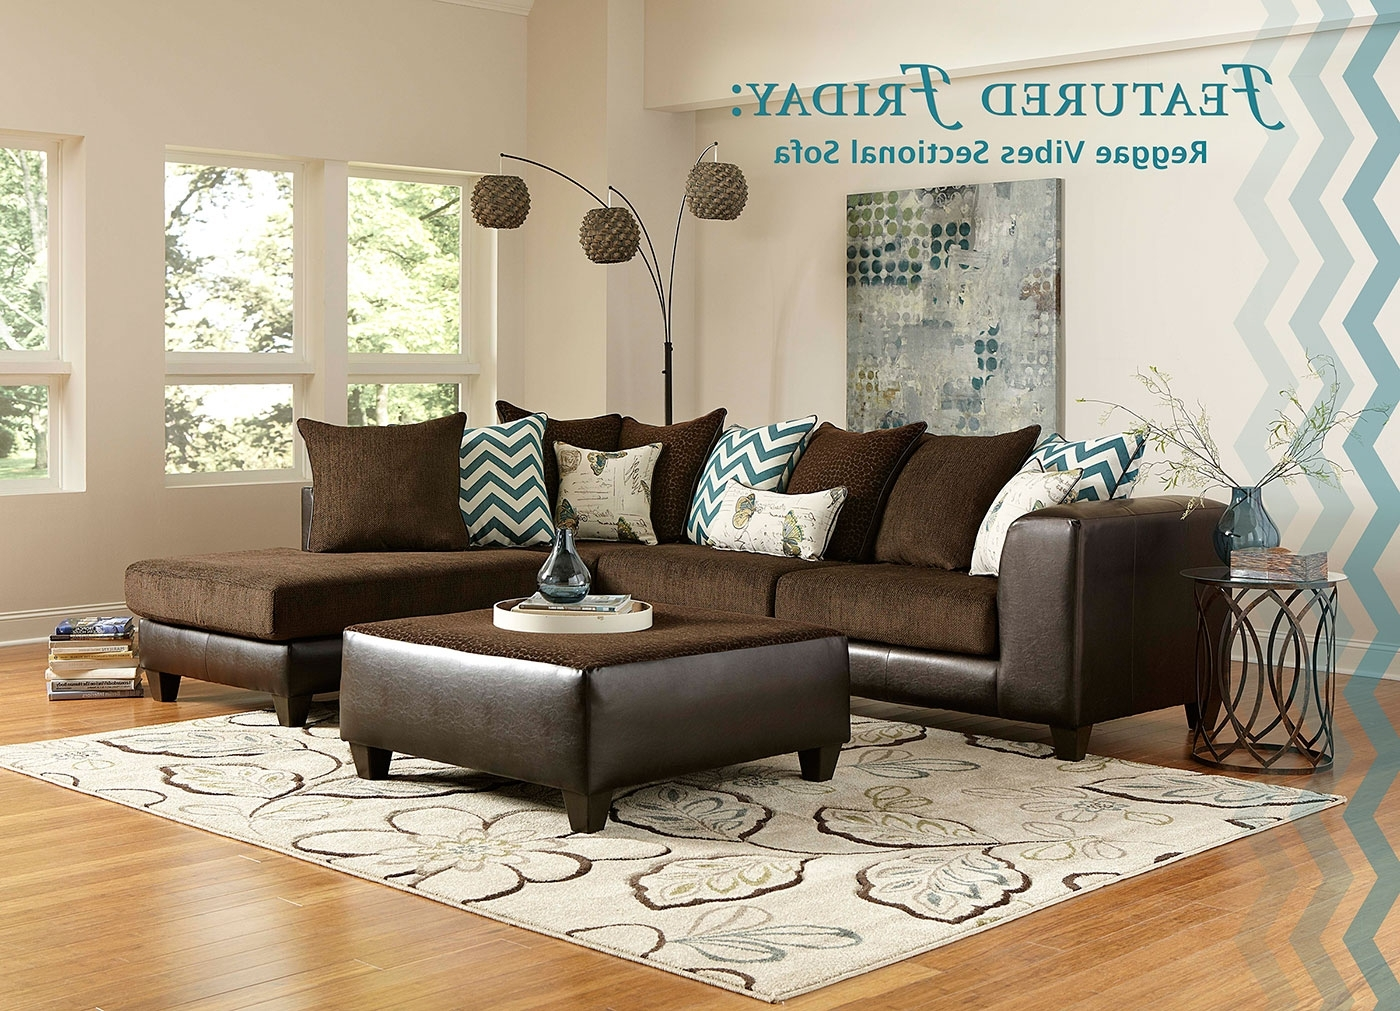 Popular Furniture: American Freight Sectionals For Luxury Living Room Pertaining To Sectional Sofas In Savannah Ga (View 11 of 15)